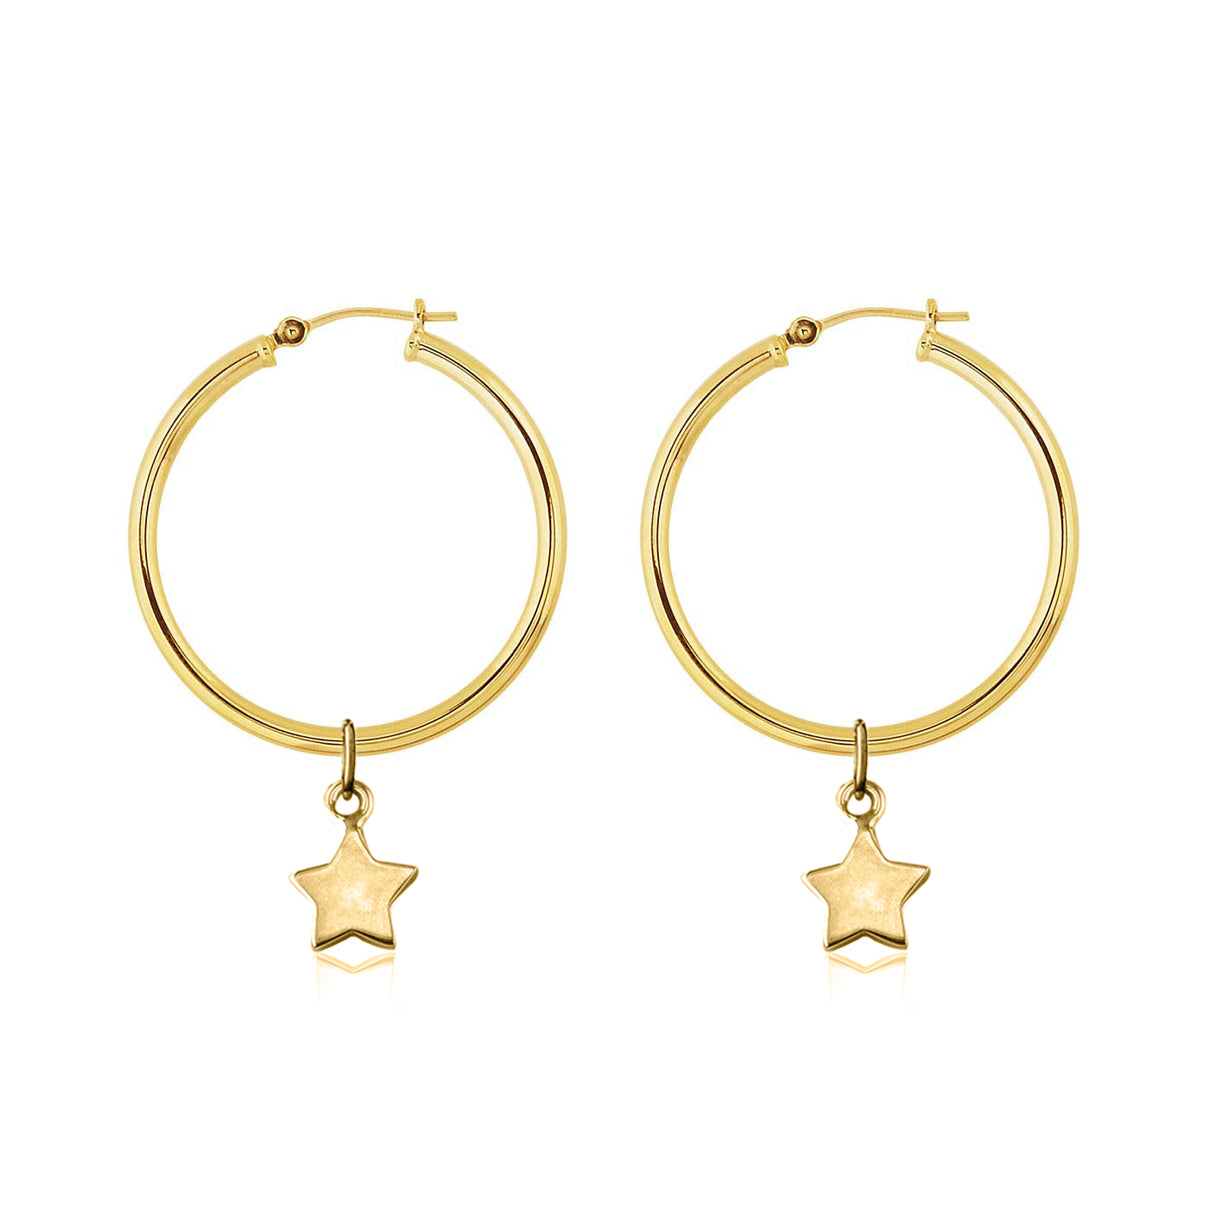 La Luna Rose Gold Tube Hoop Earrings with Mini Star Charms